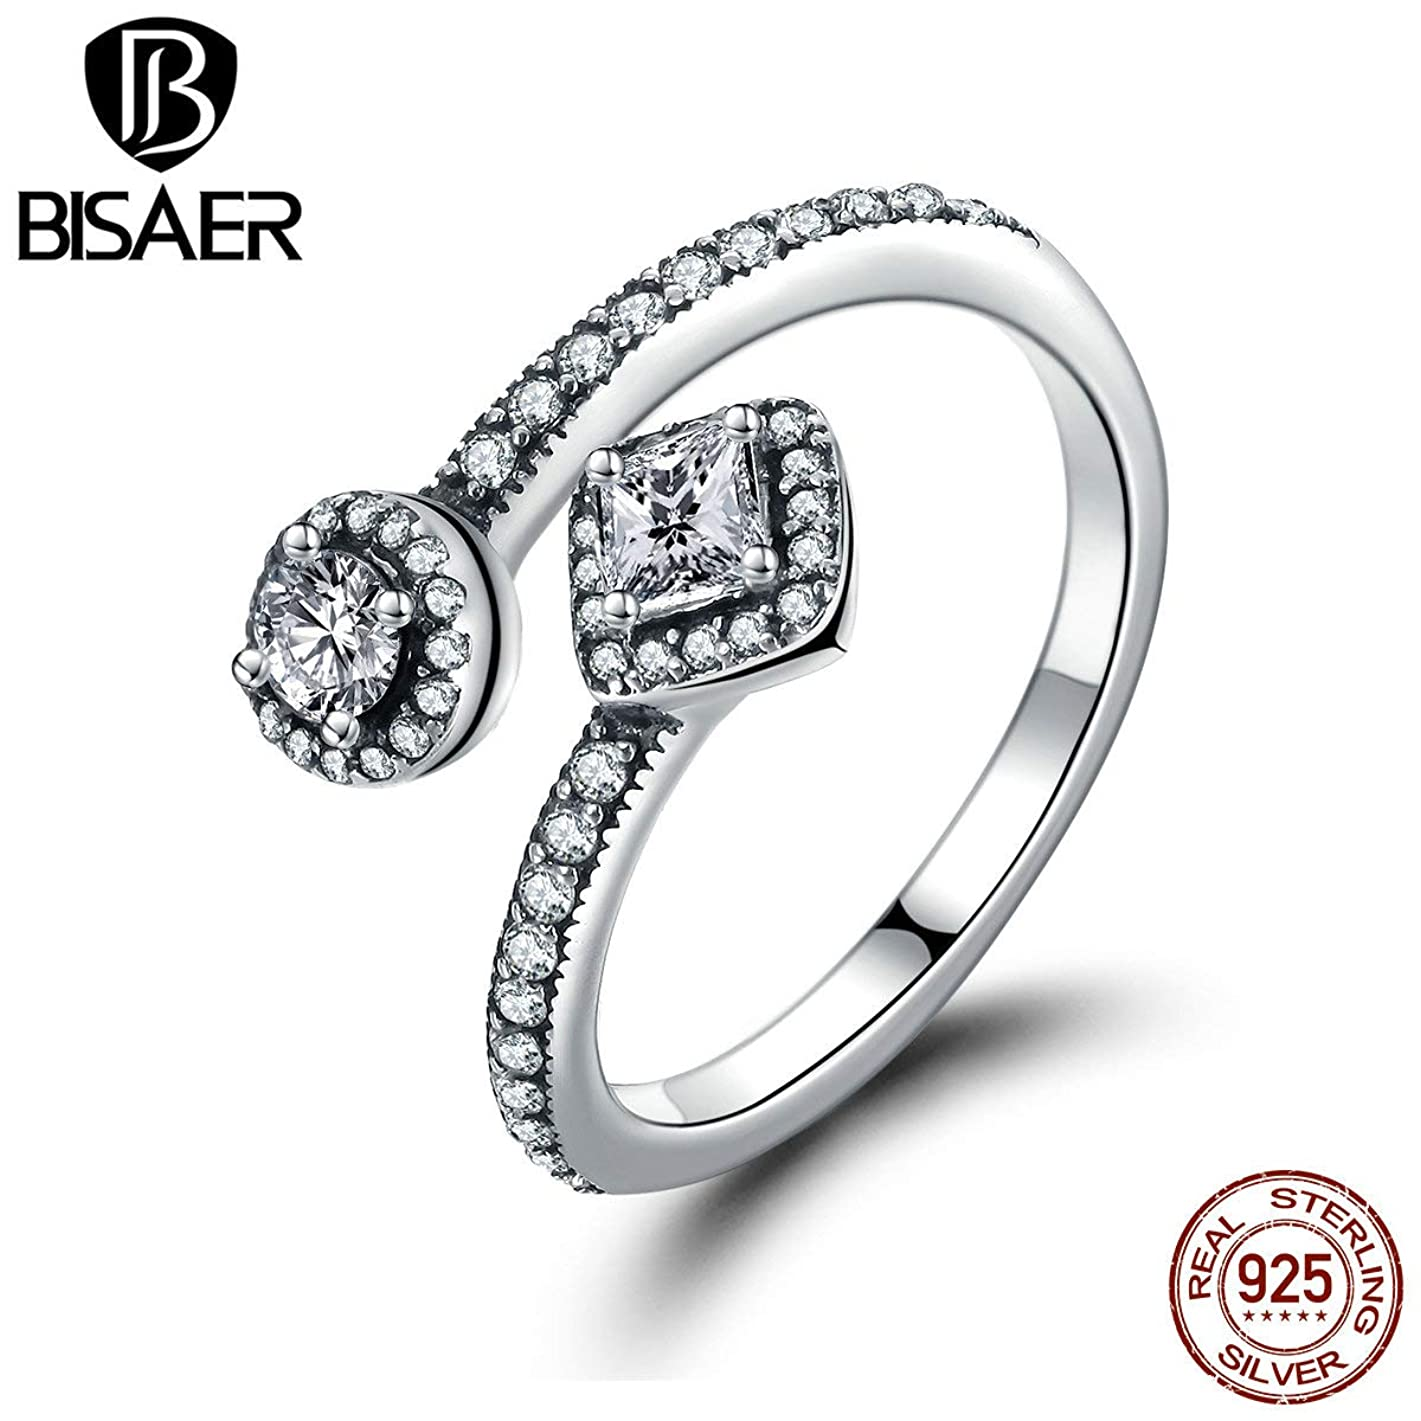 Genuine 925 Sterling Silver Rings | Big Crystals Open Ring for Women | Engagement Fashion Jewelry